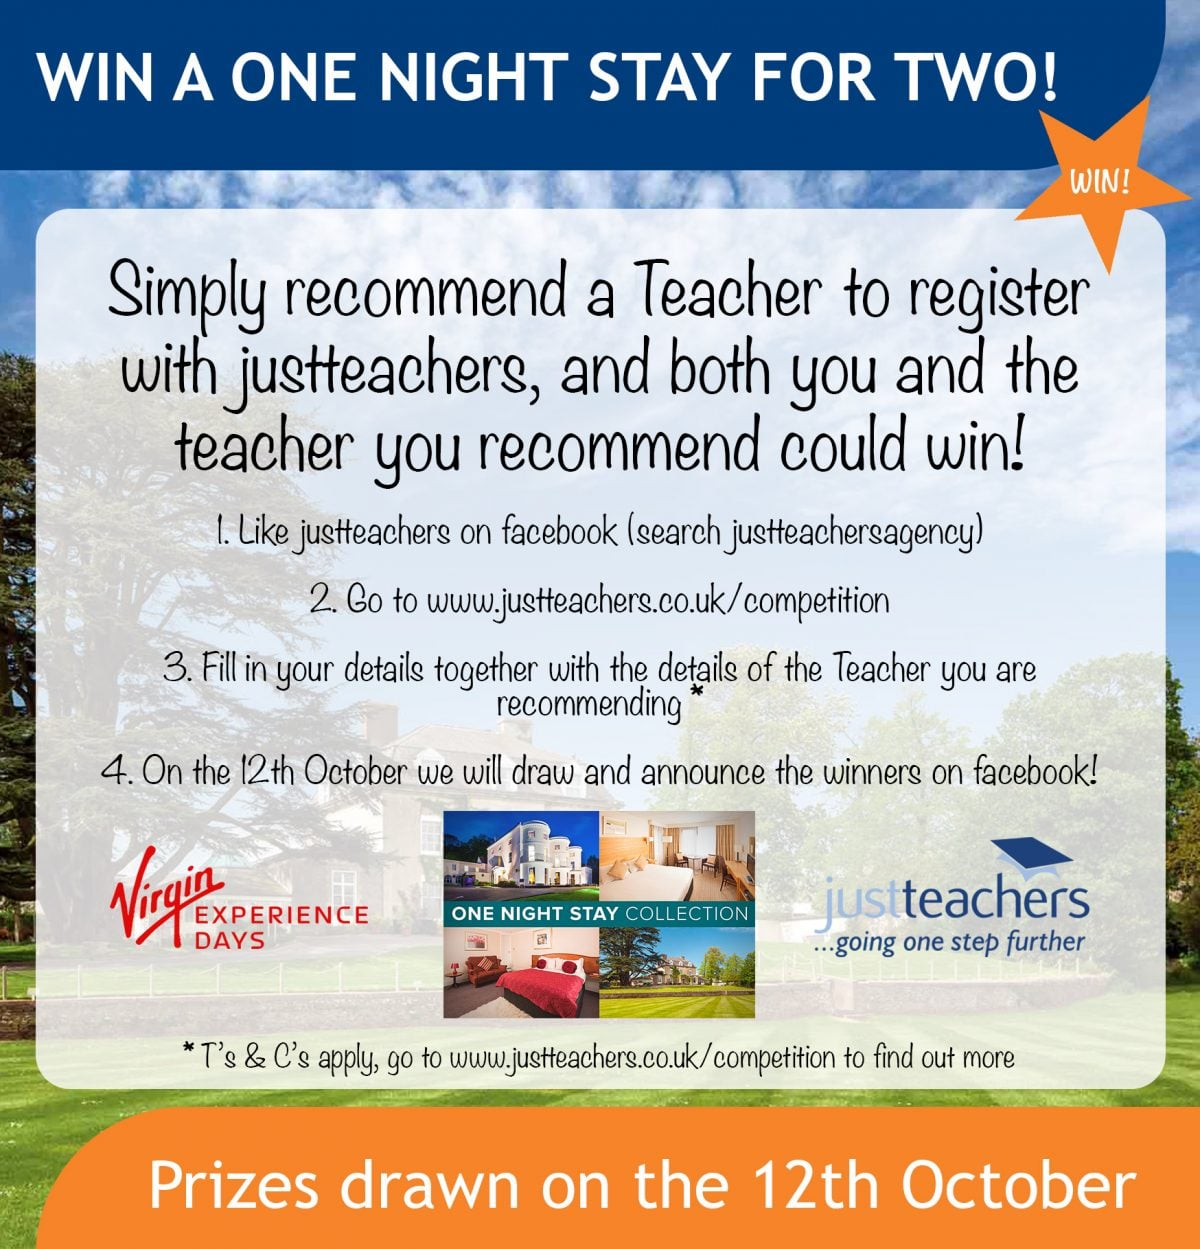 Recommend a friend and win a one night stay for two!